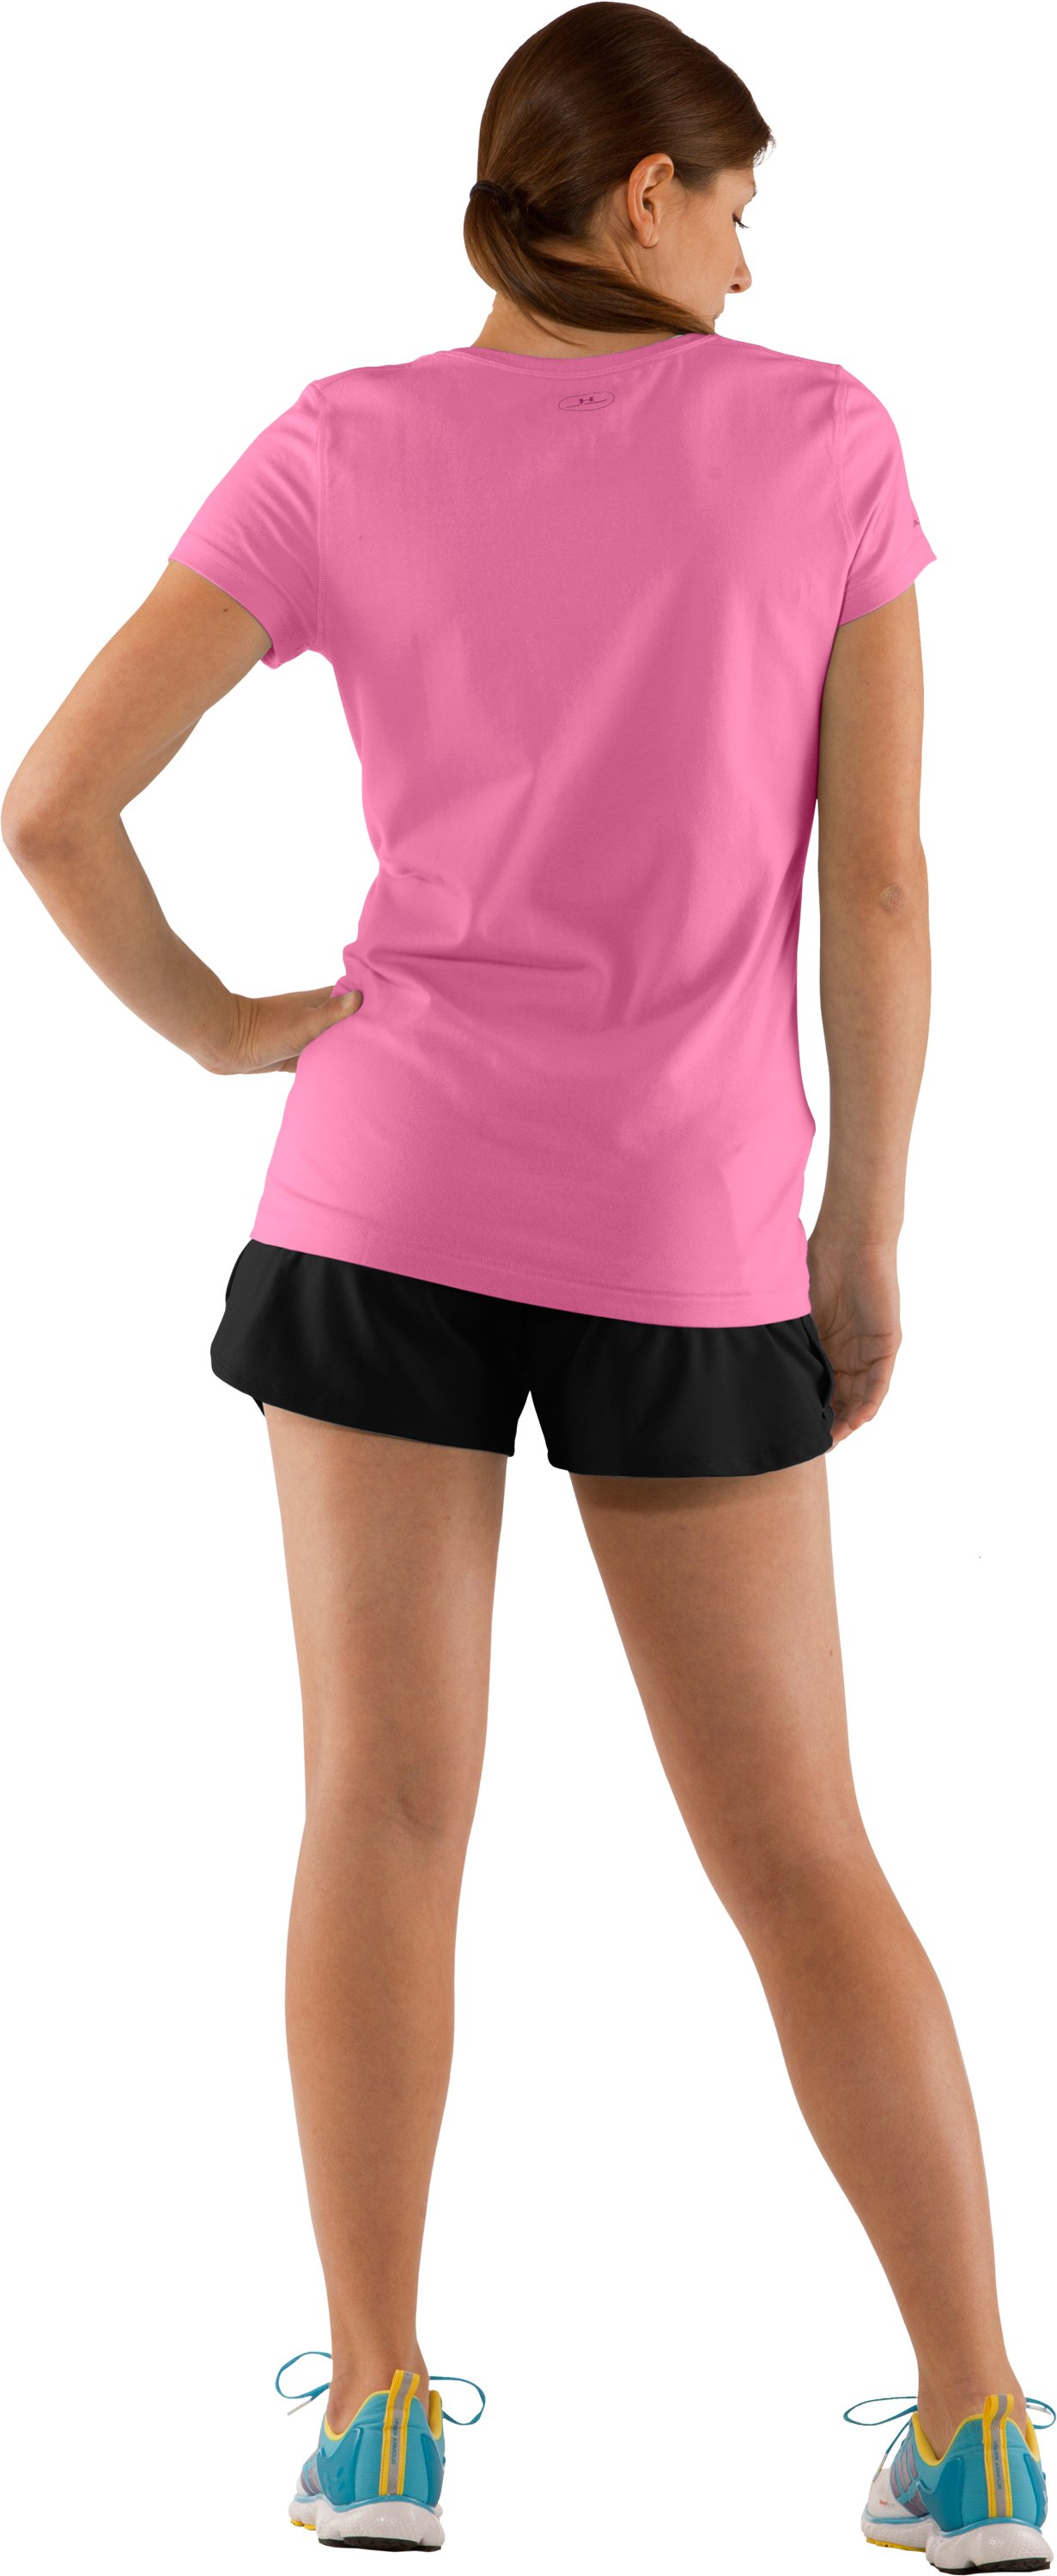 Women's Charged Cotton® Sassy Scoop T-Shirt, Fluo Pink, Back